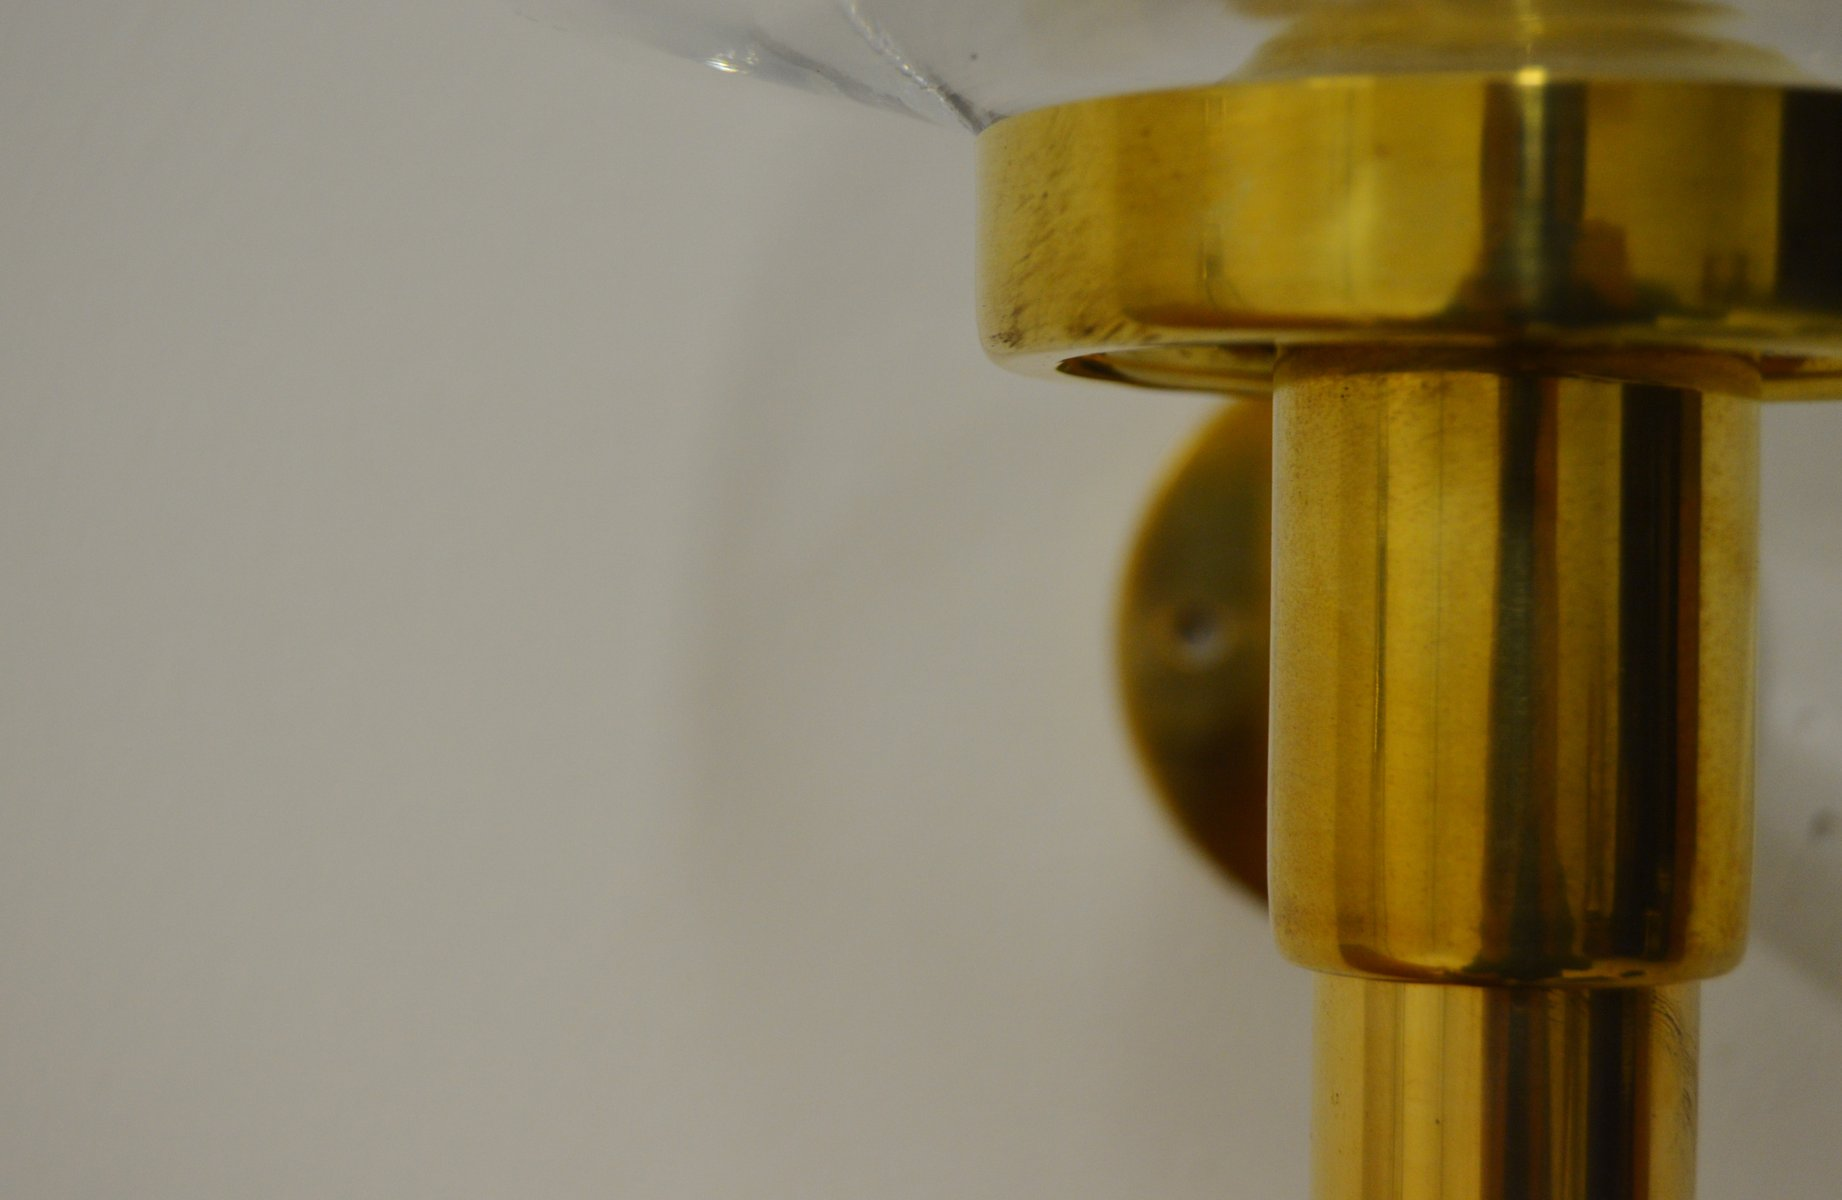 Vintage Wall Mounted Brass and Glass Candle Holder by Hans-Agne Jakobsson for sale at Pamono